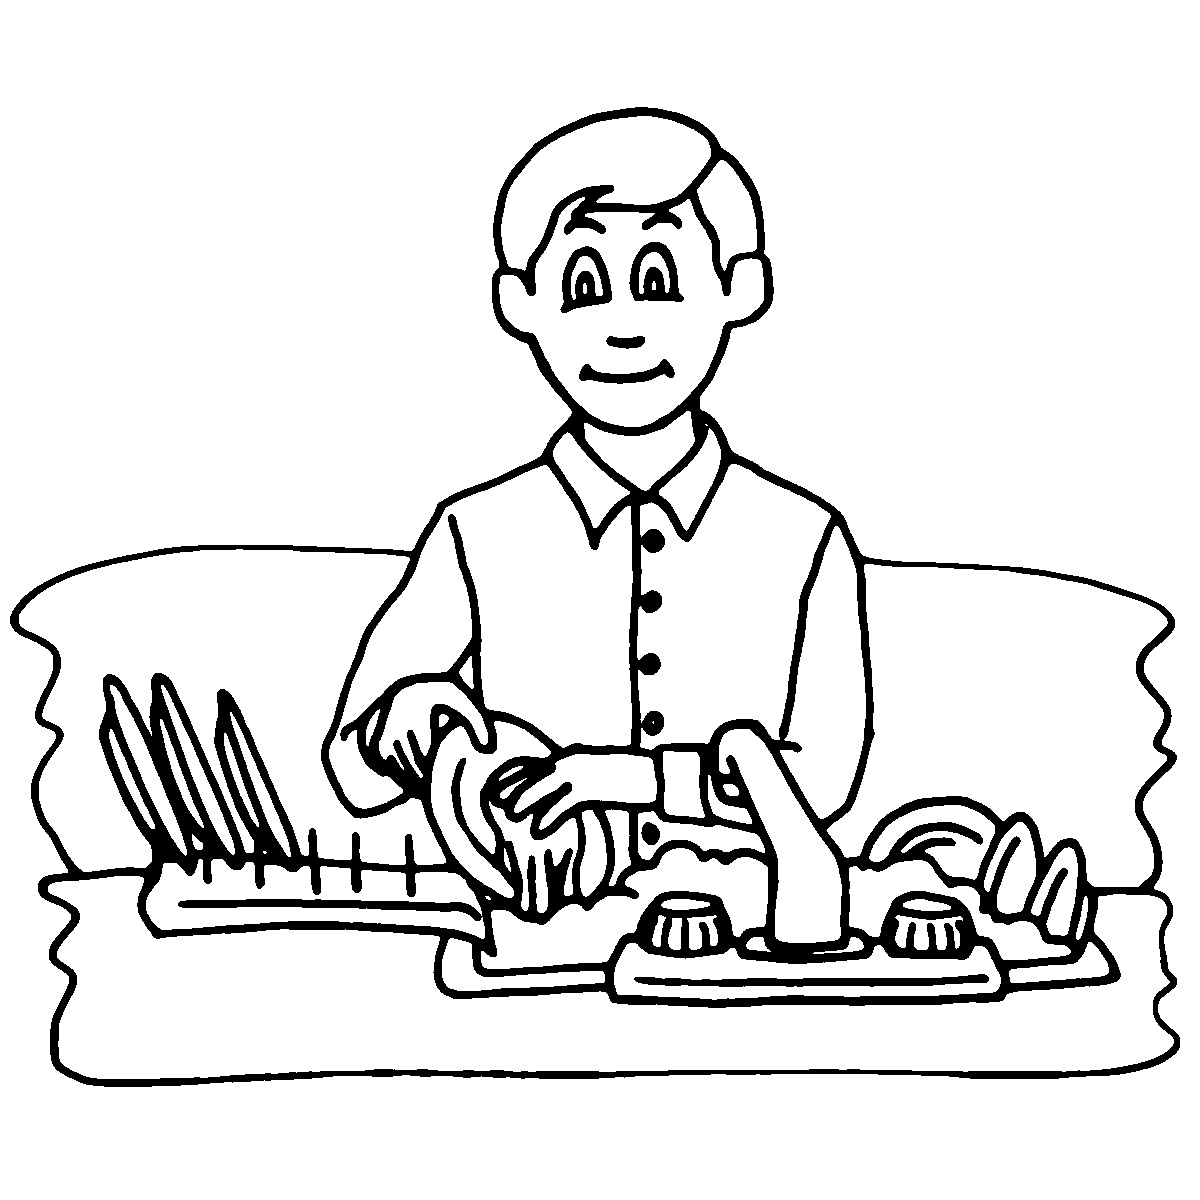 washing coloring pages - photo #29